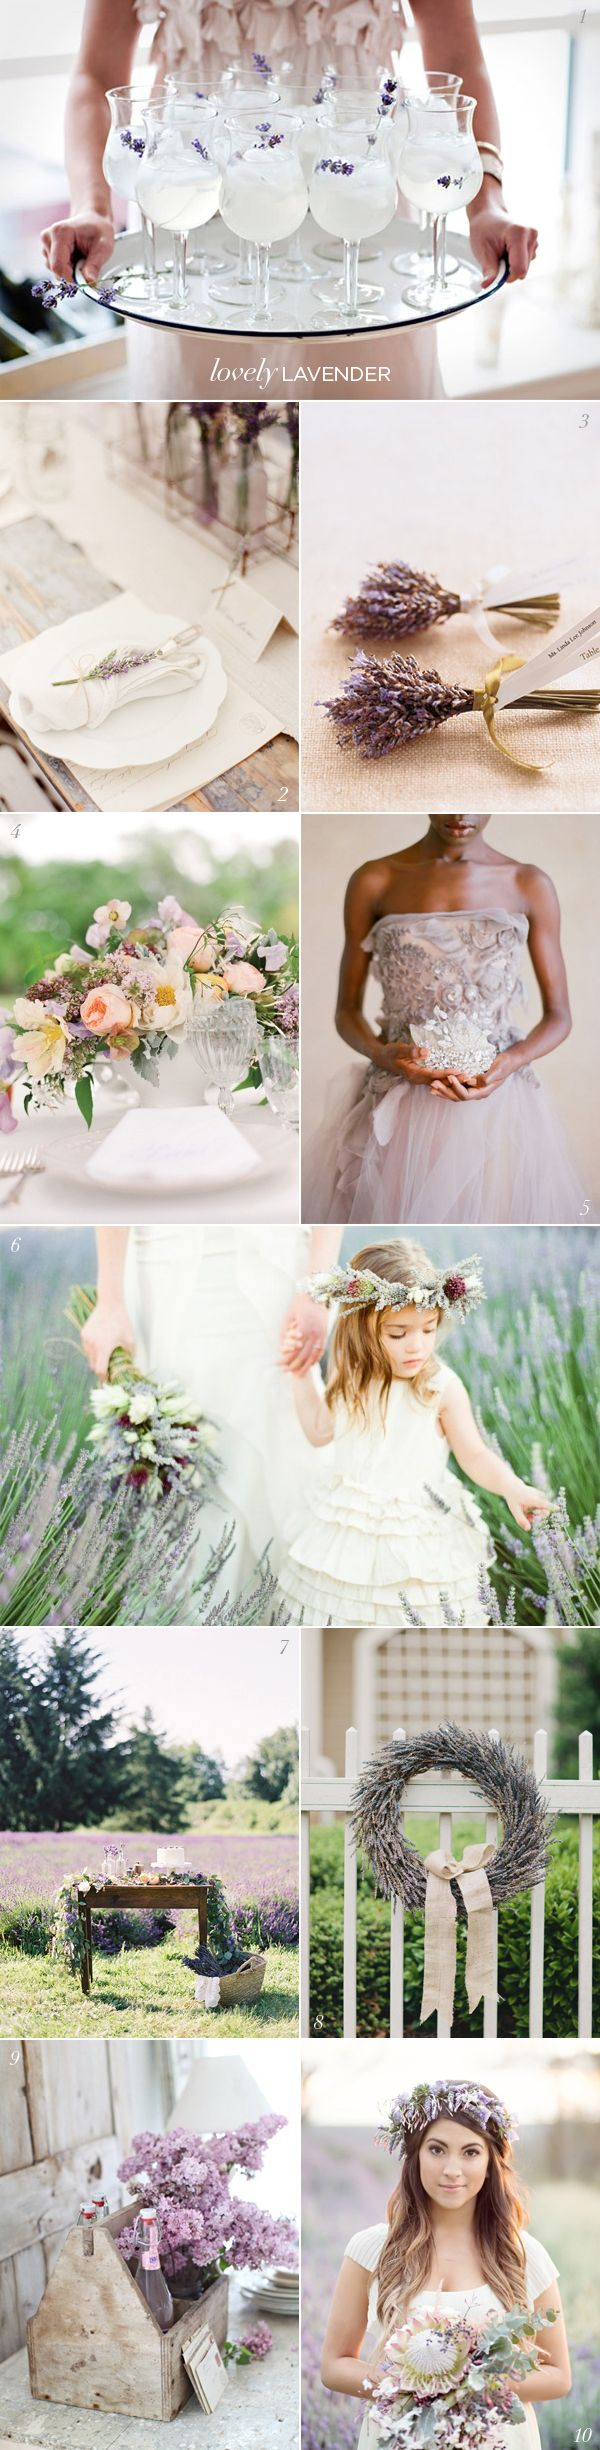 Love this look for a summer wedding - making even the water pretty and special.